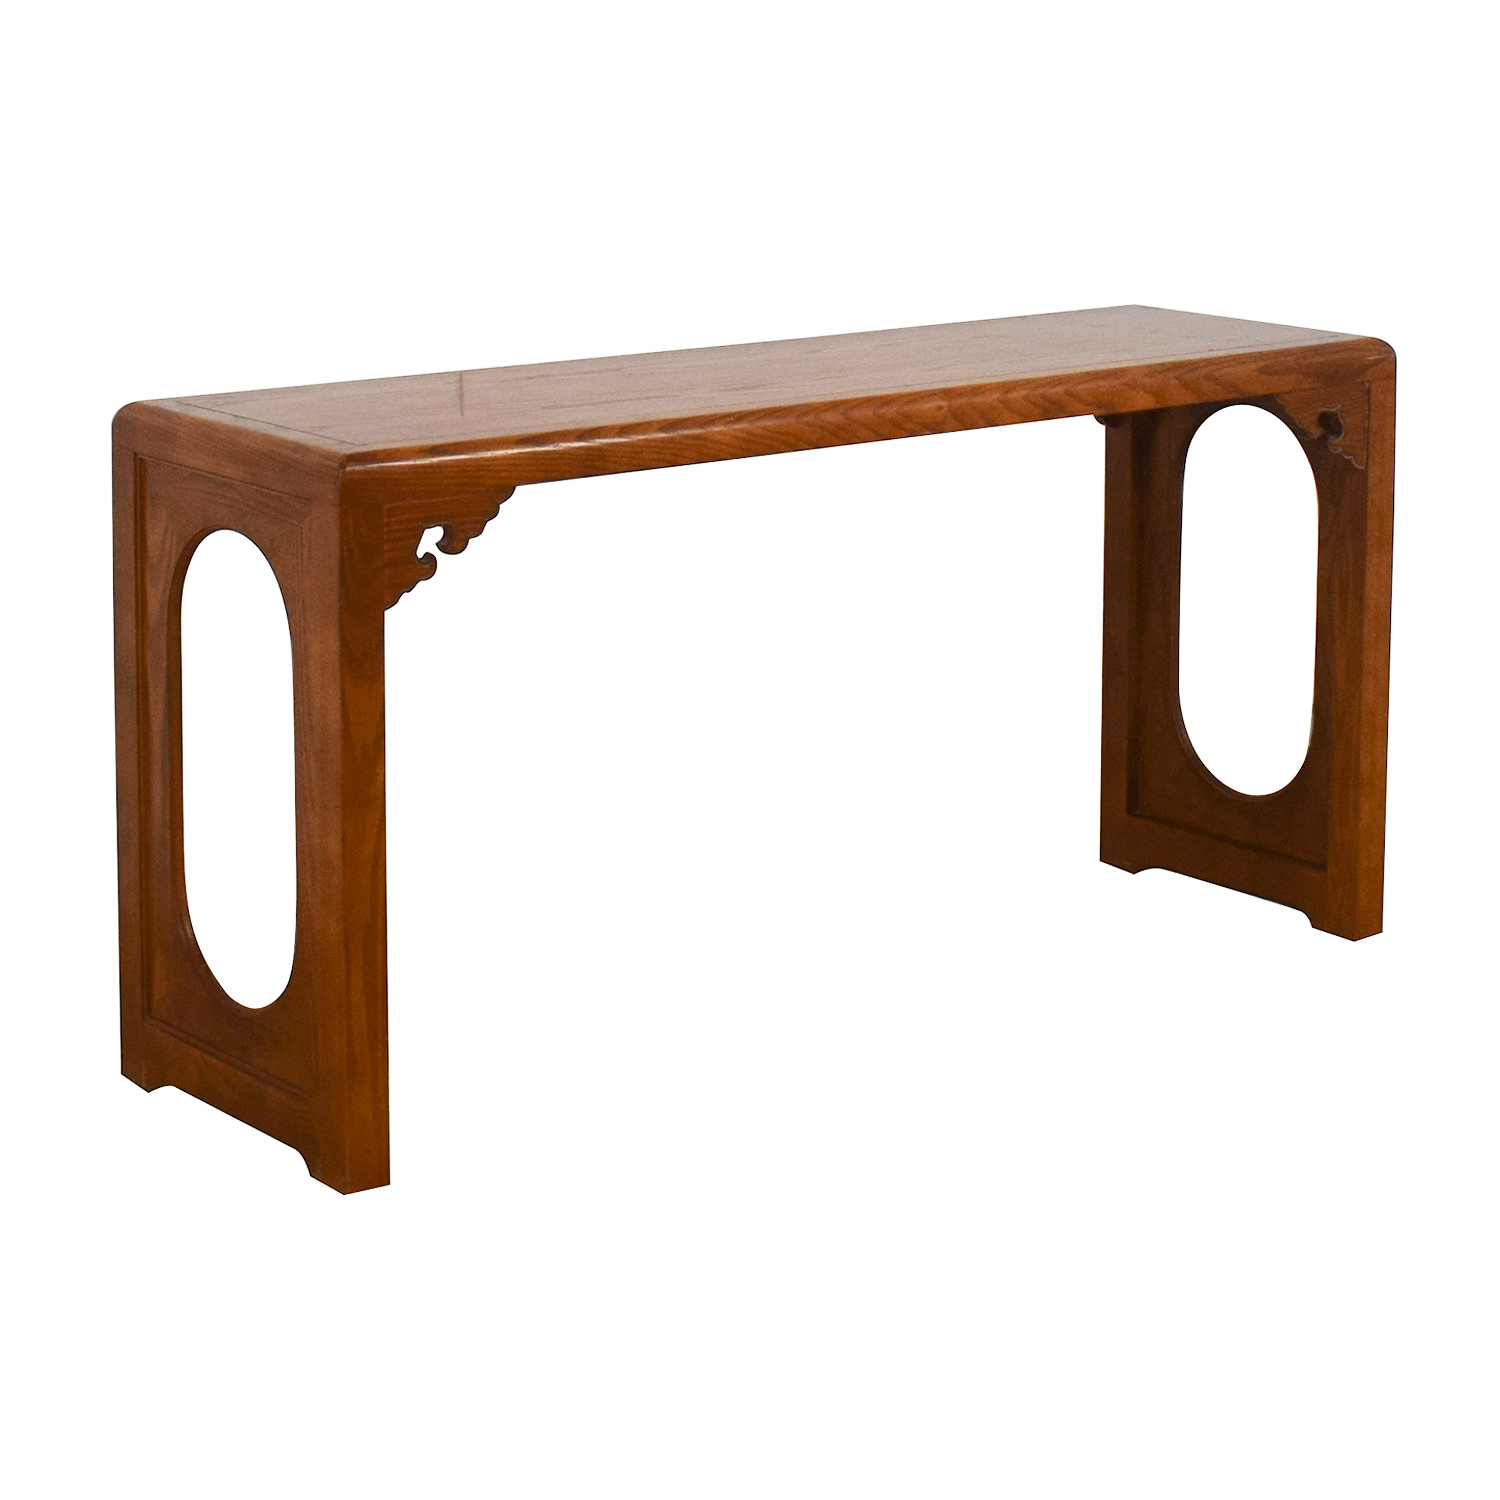 Vintage Entryway Console Table / Accent Tables